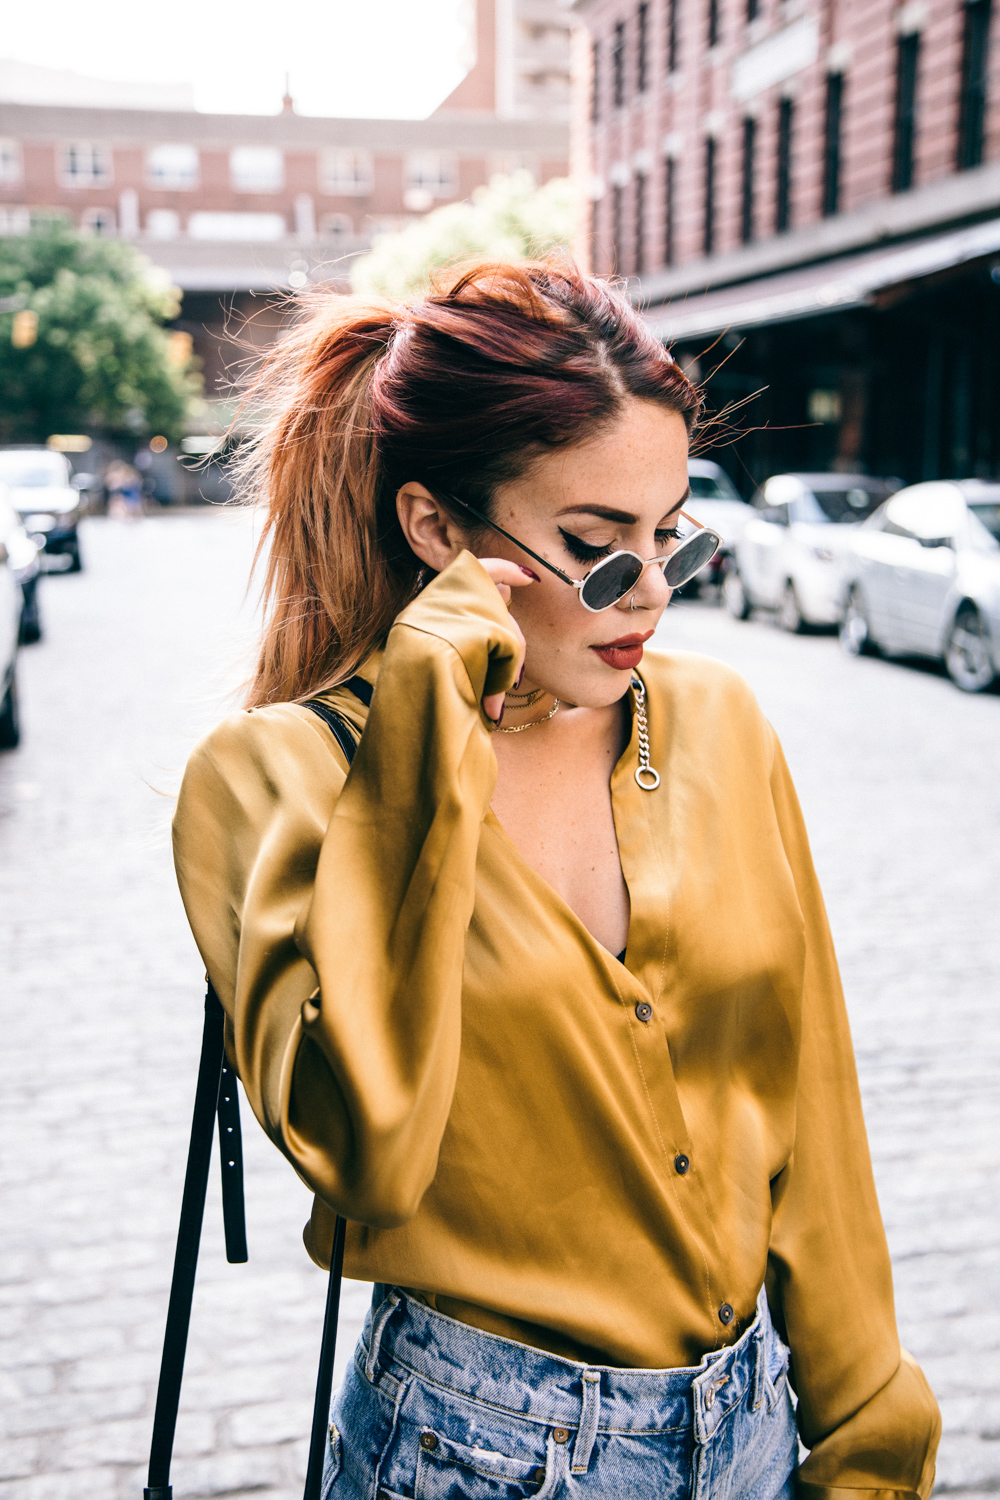 Lua wearing Public School mustard blouse and Quay x Kylie Jenner sunglasses